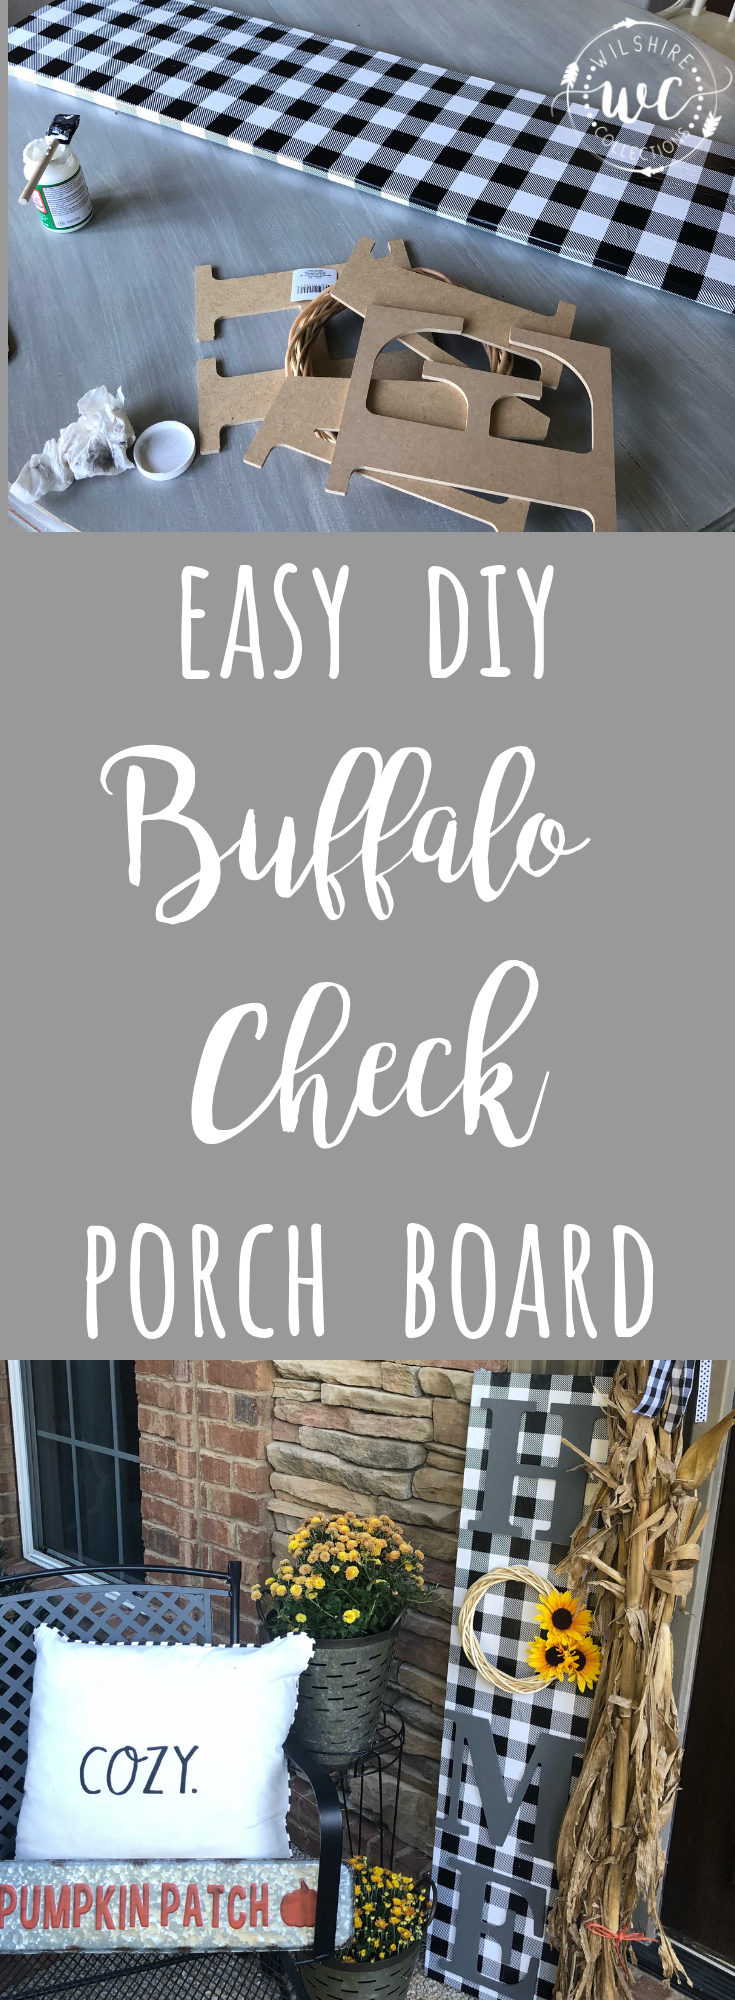 Easy DIY buffalo check porch board! This easy project is so cute and could be used all year round on your front porch!